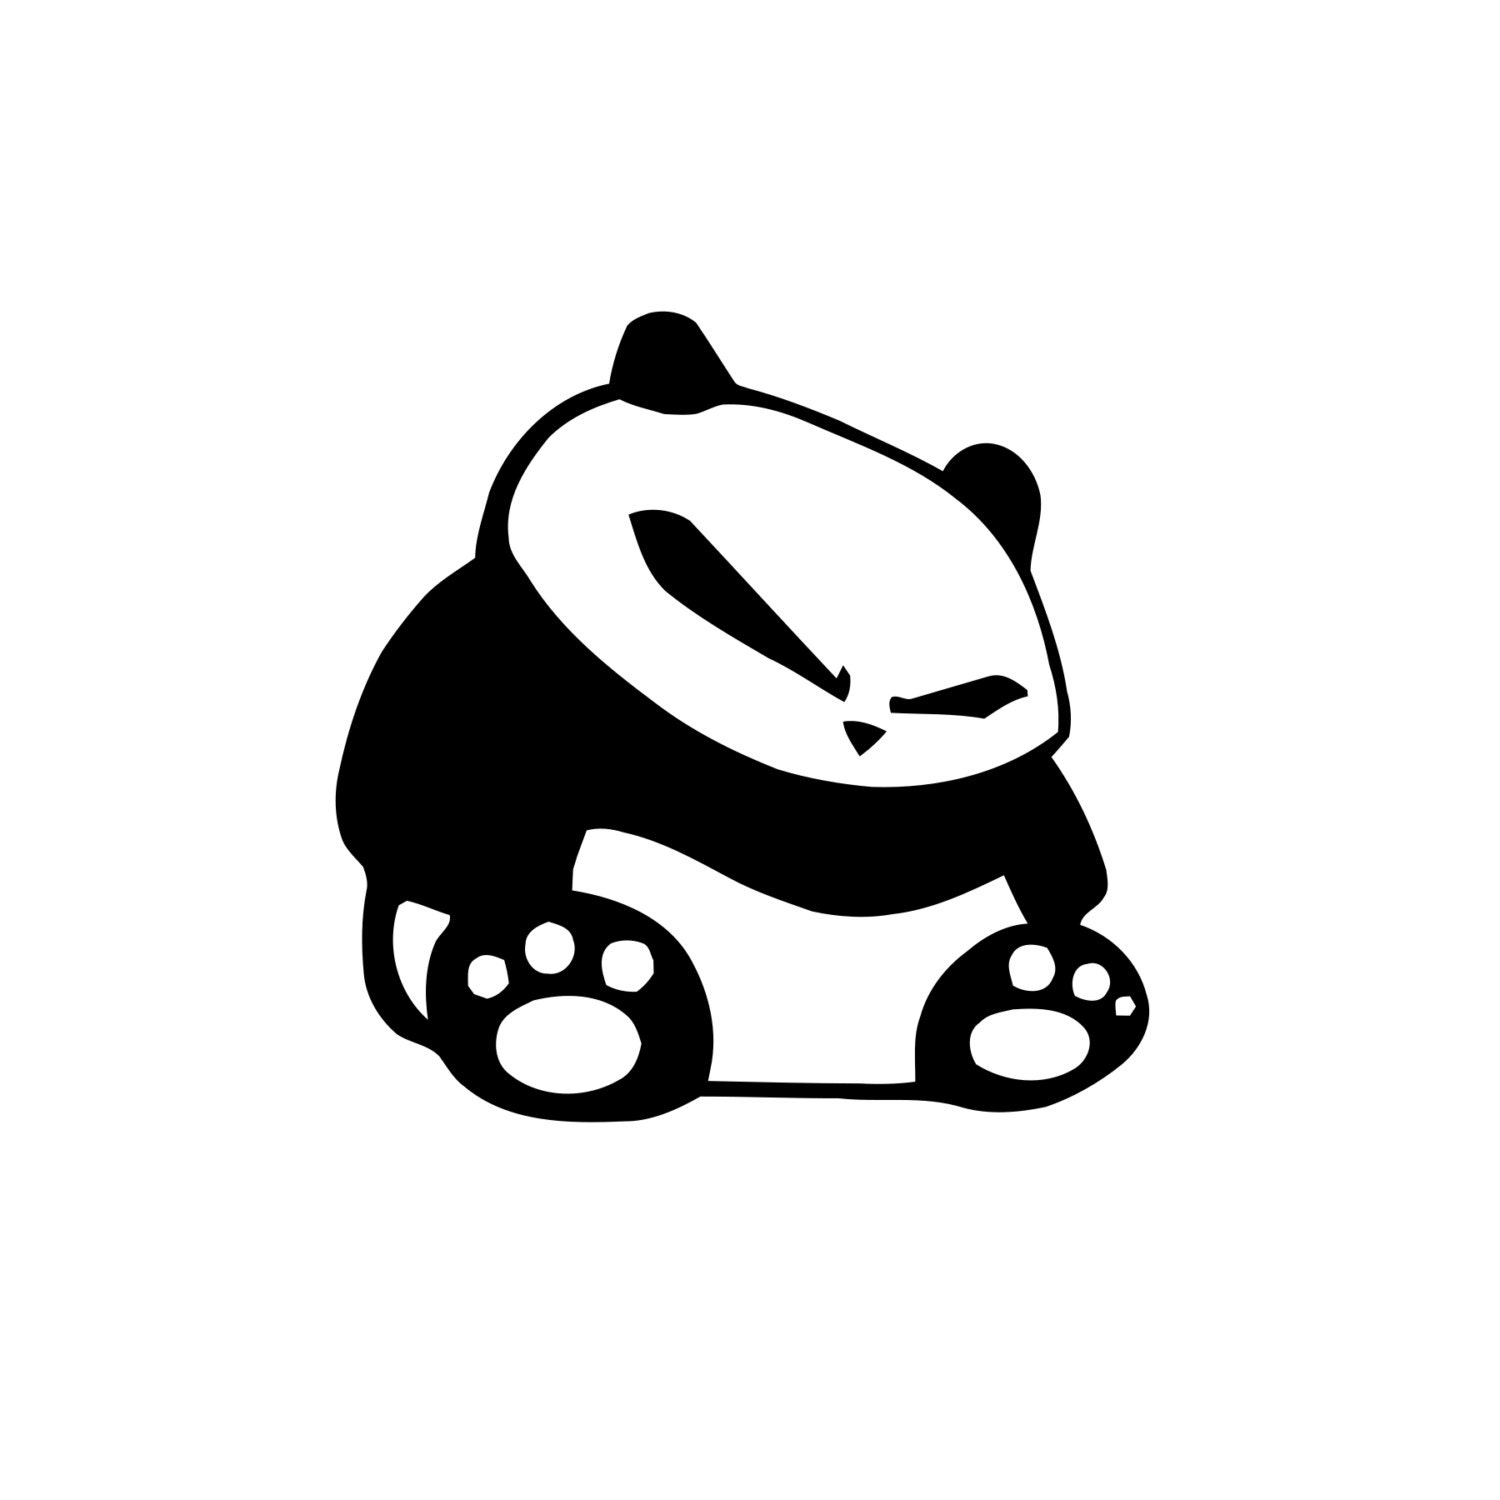 Banksy panda with guns sticker truck stickers logos and vinyl -  Zoom